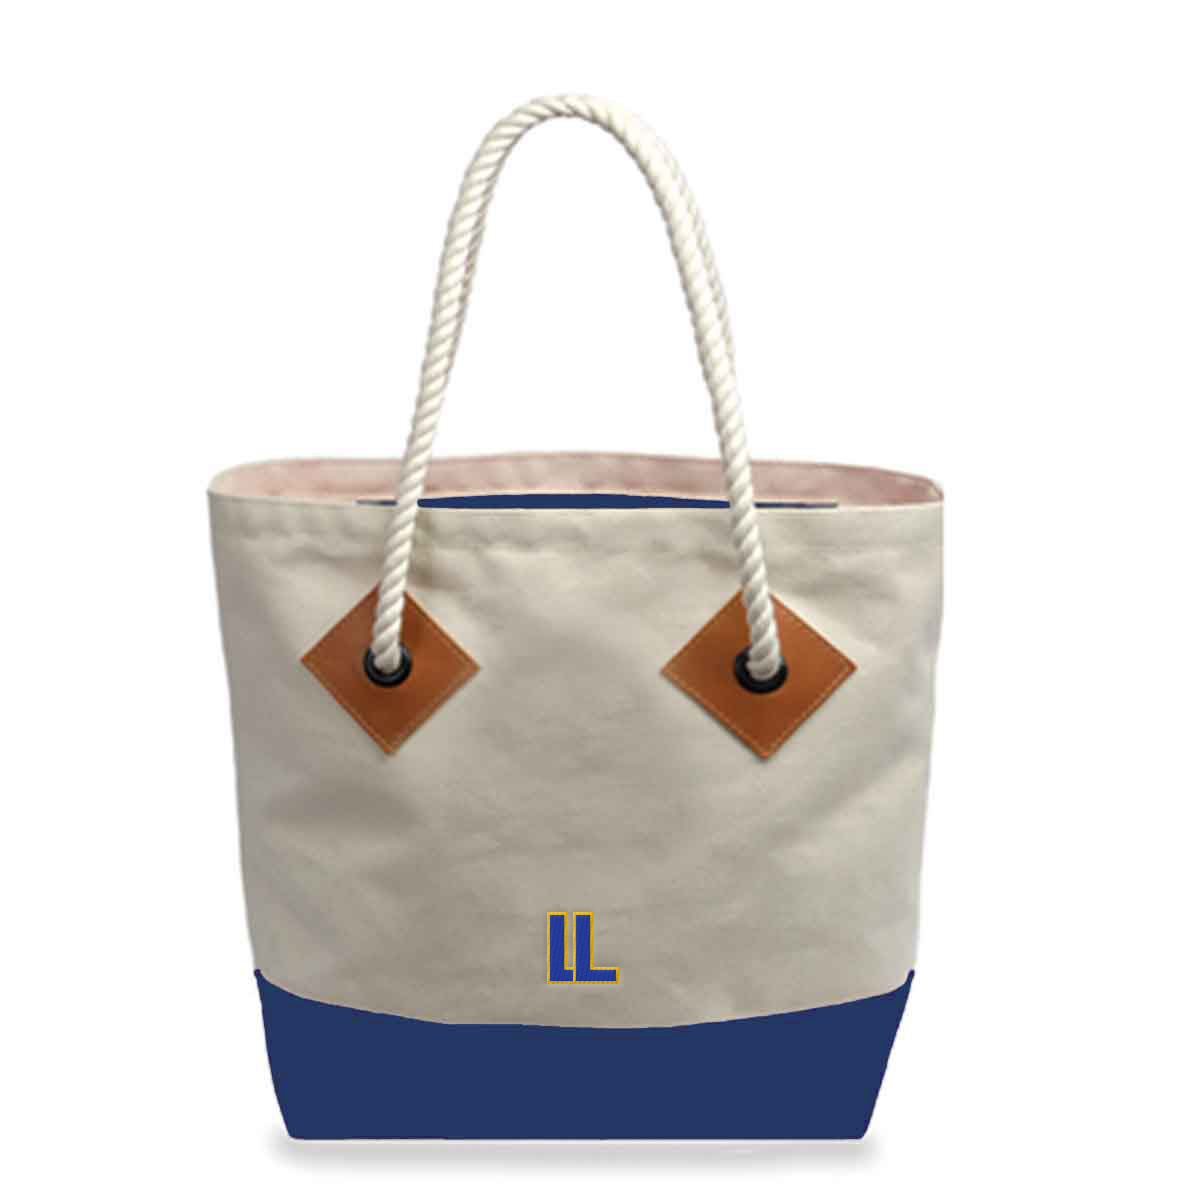 146714 rope tote embroidery up to 5k one location